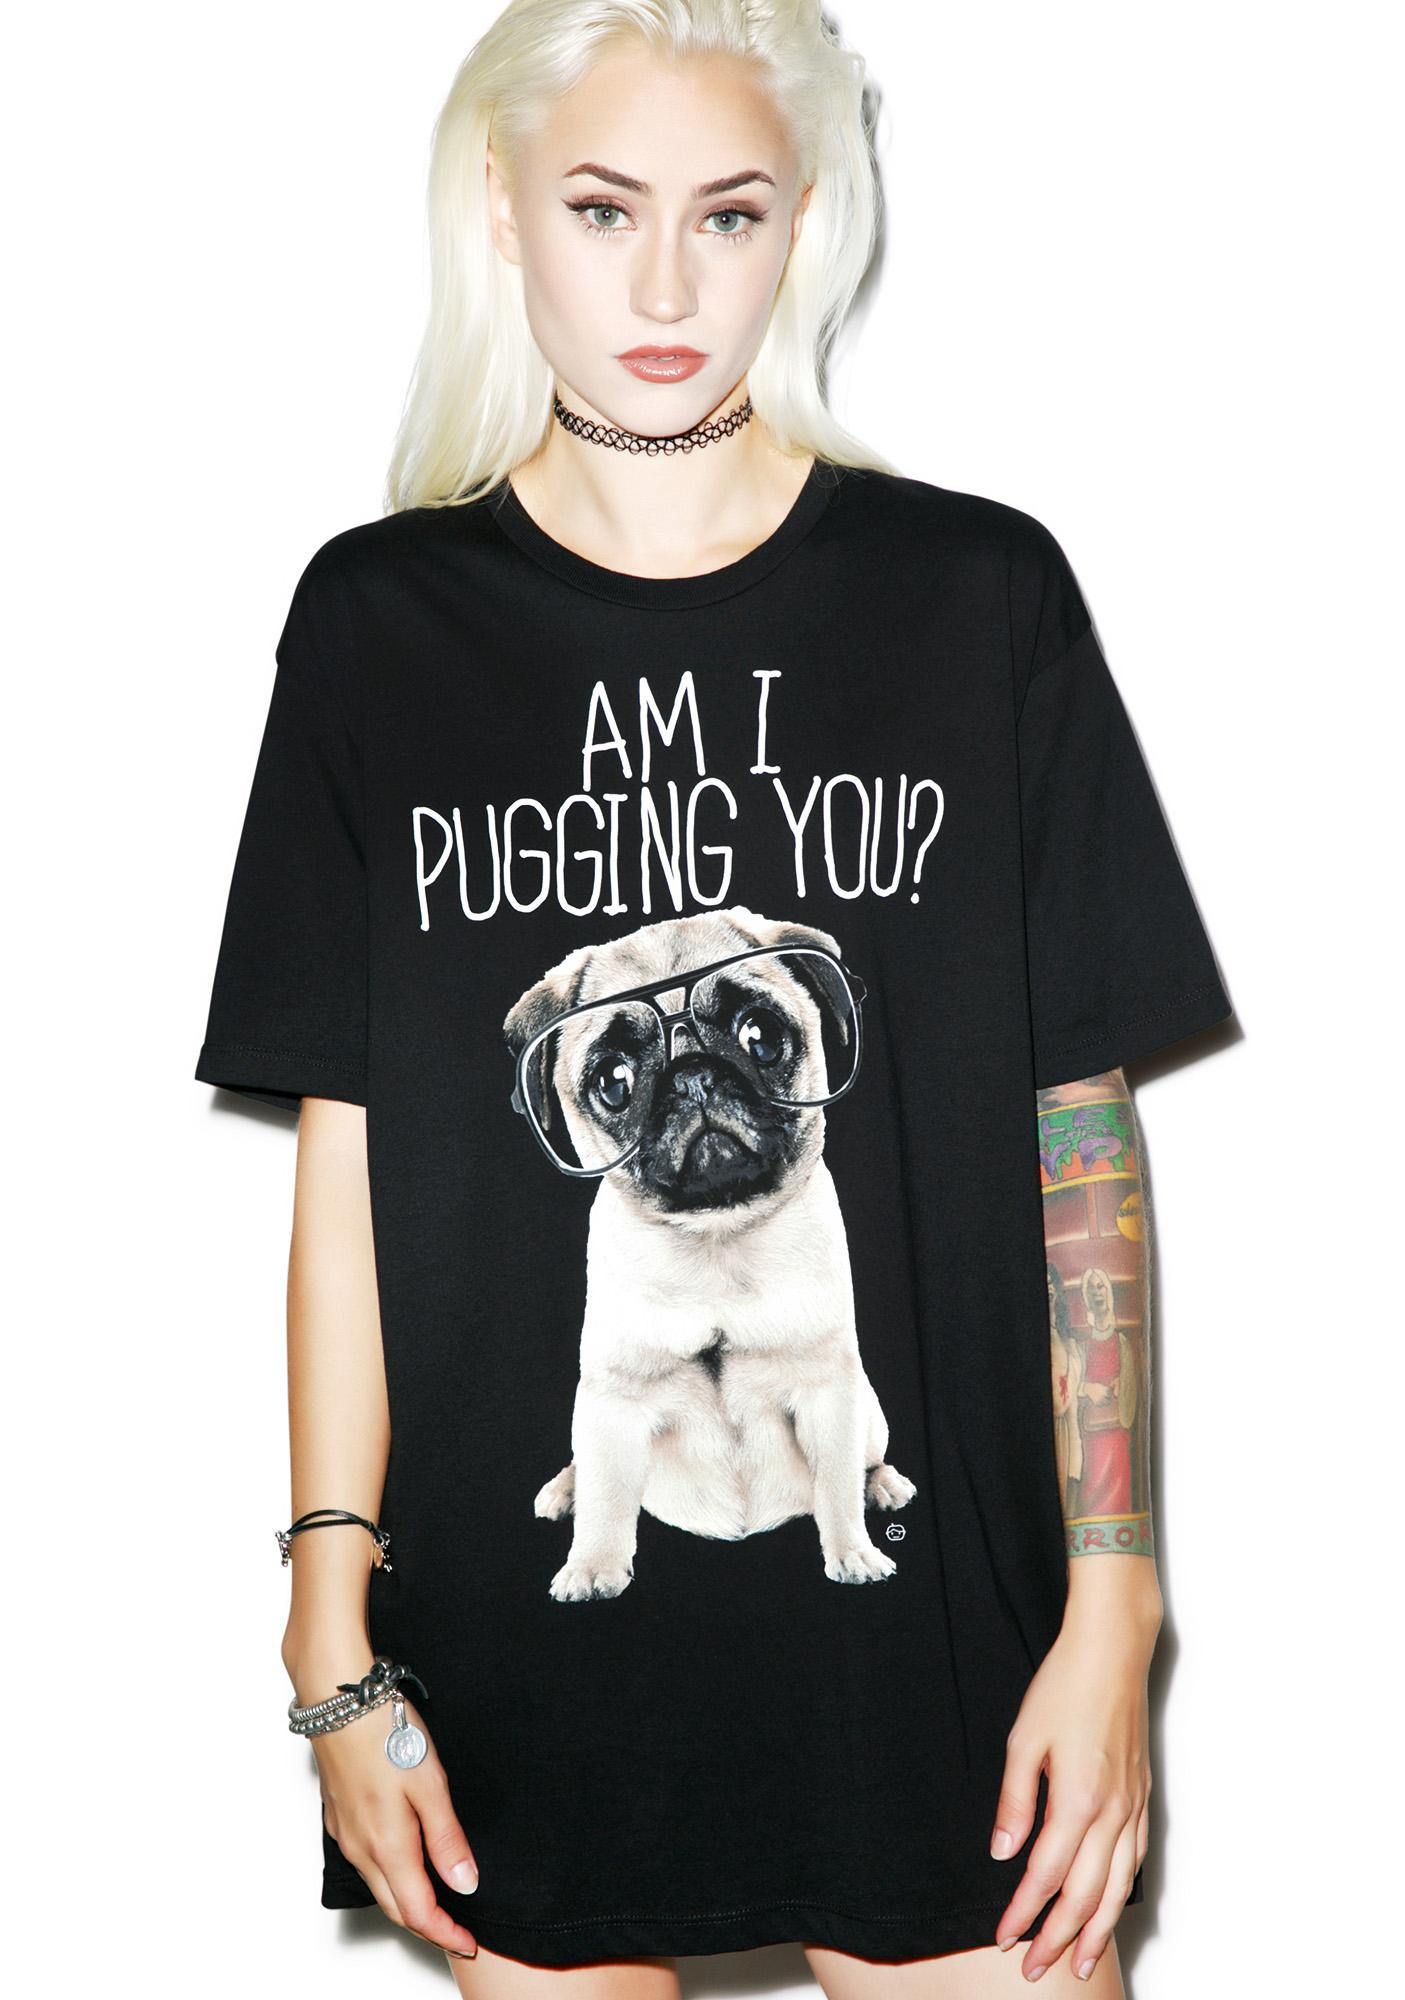 Am I Pugging You? Tee